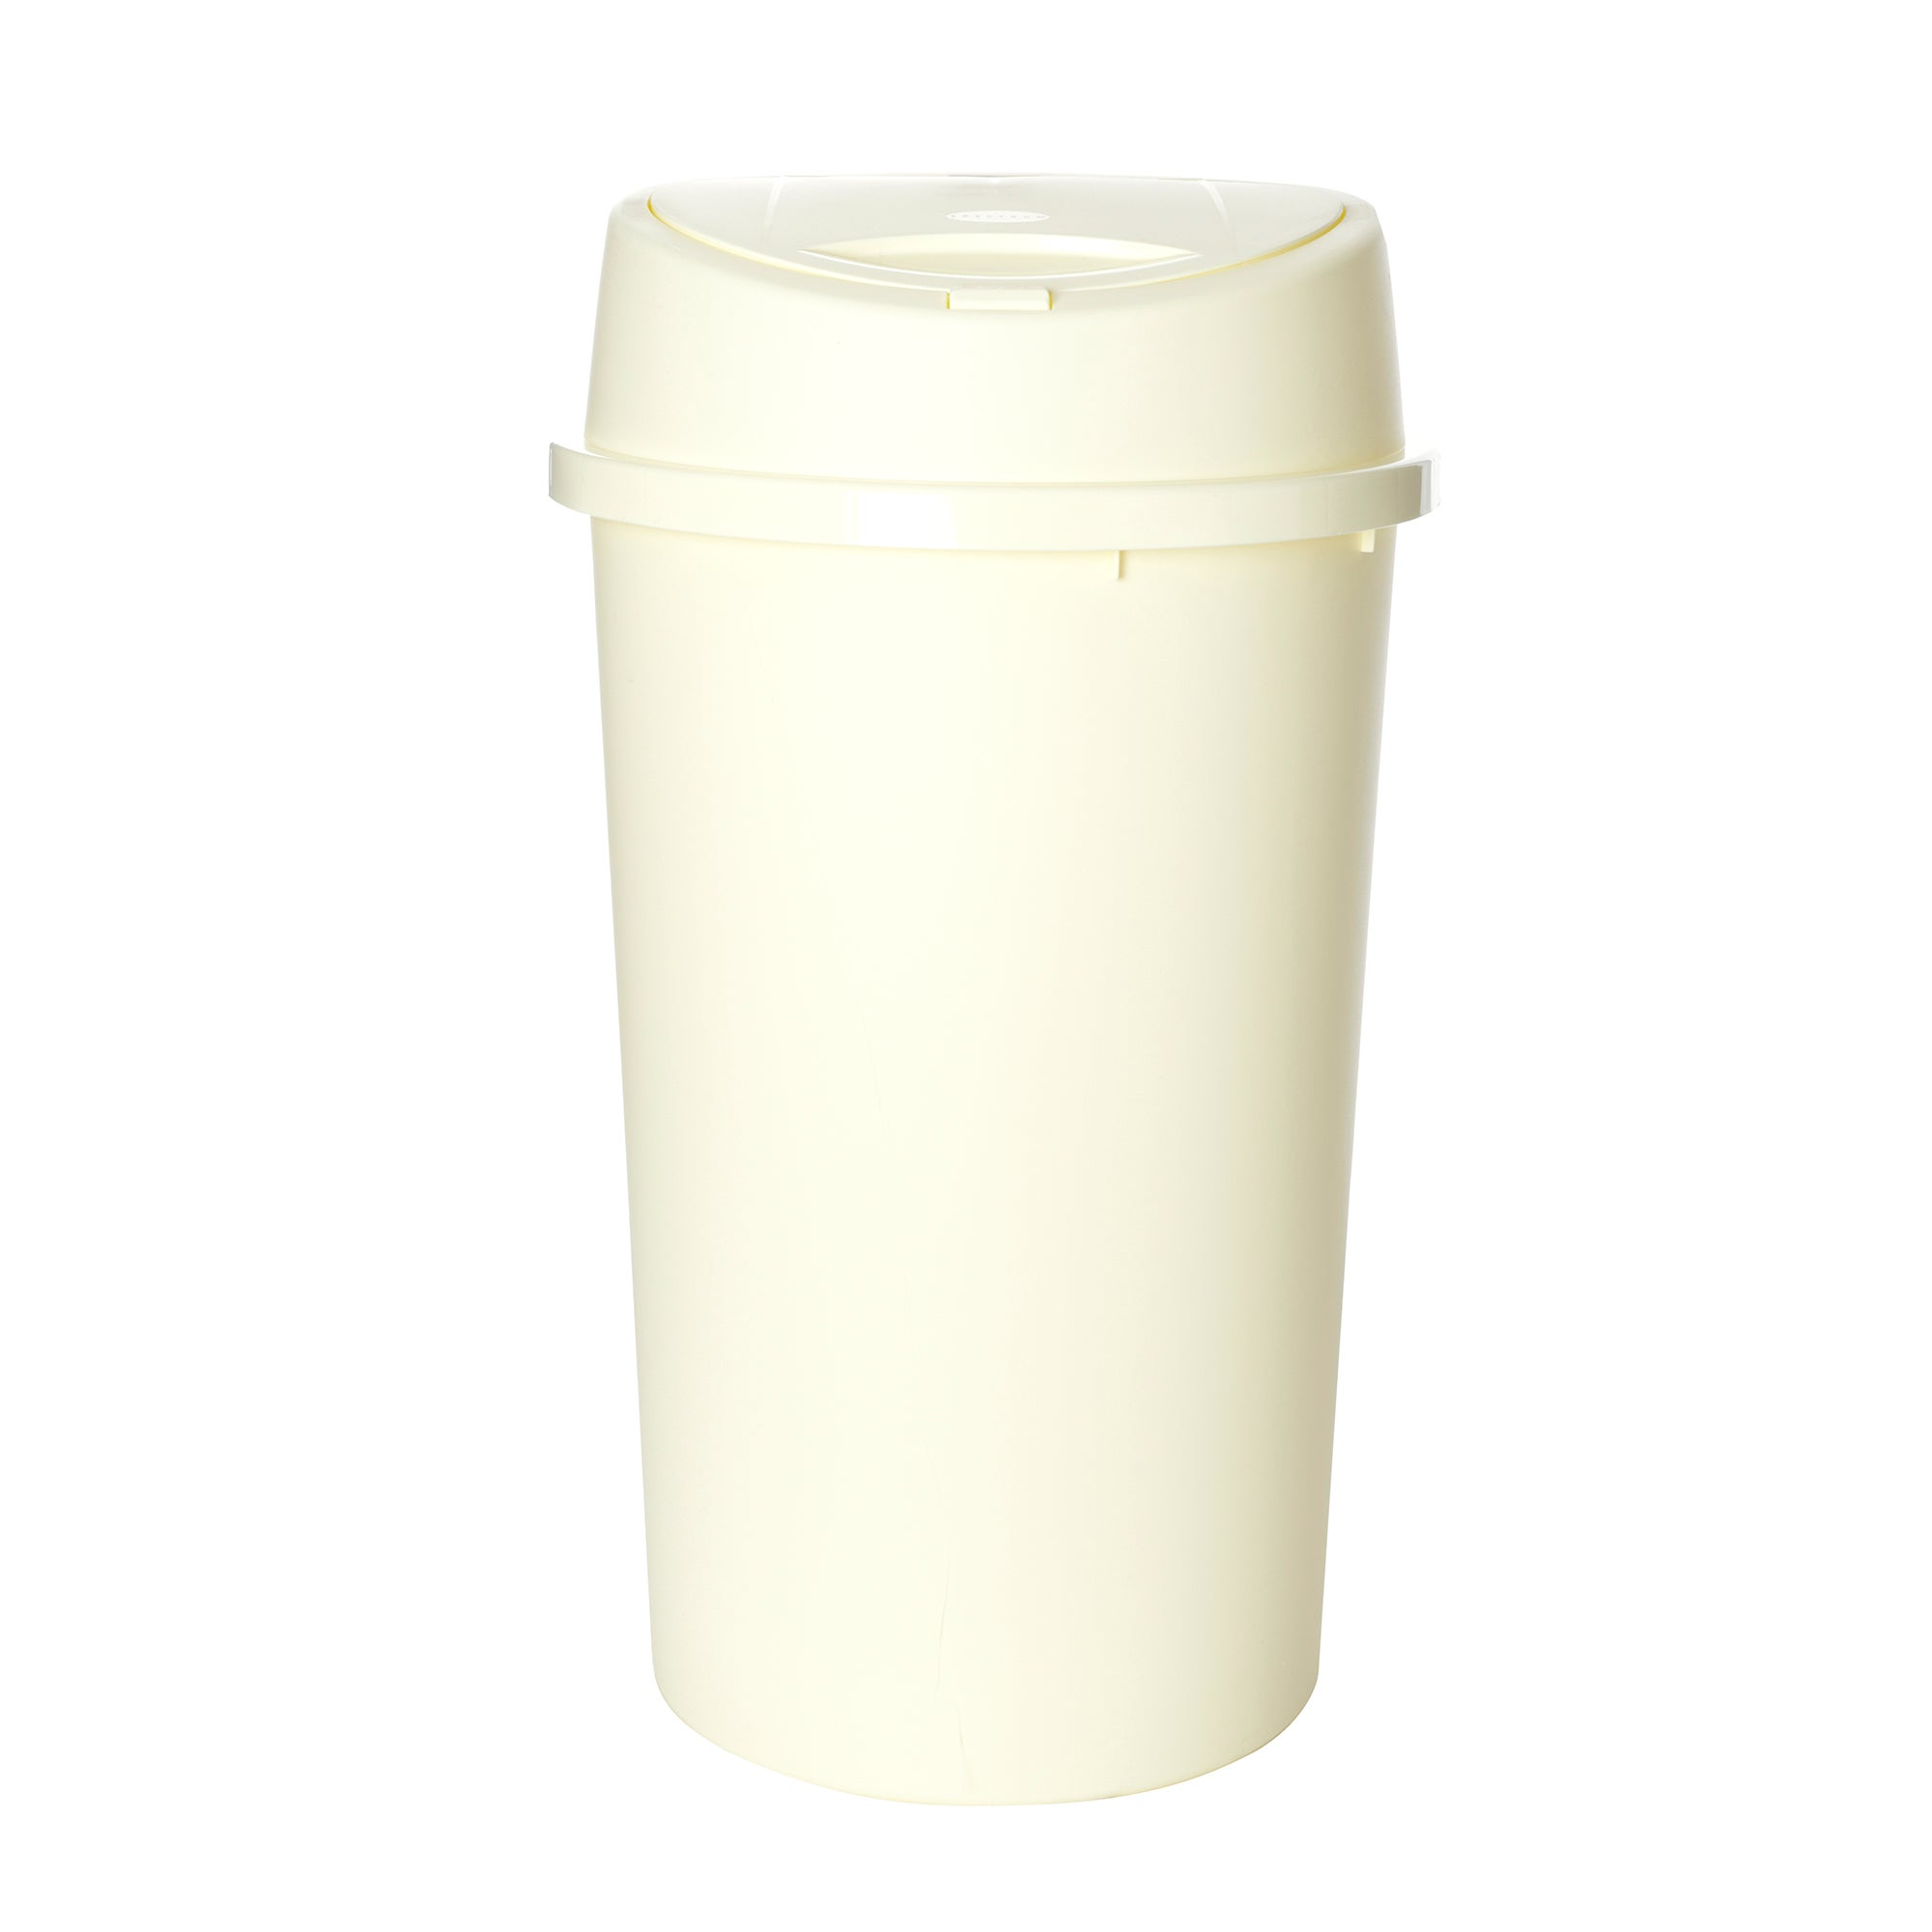 Spectrum Cream 45 Litre Touch Bin